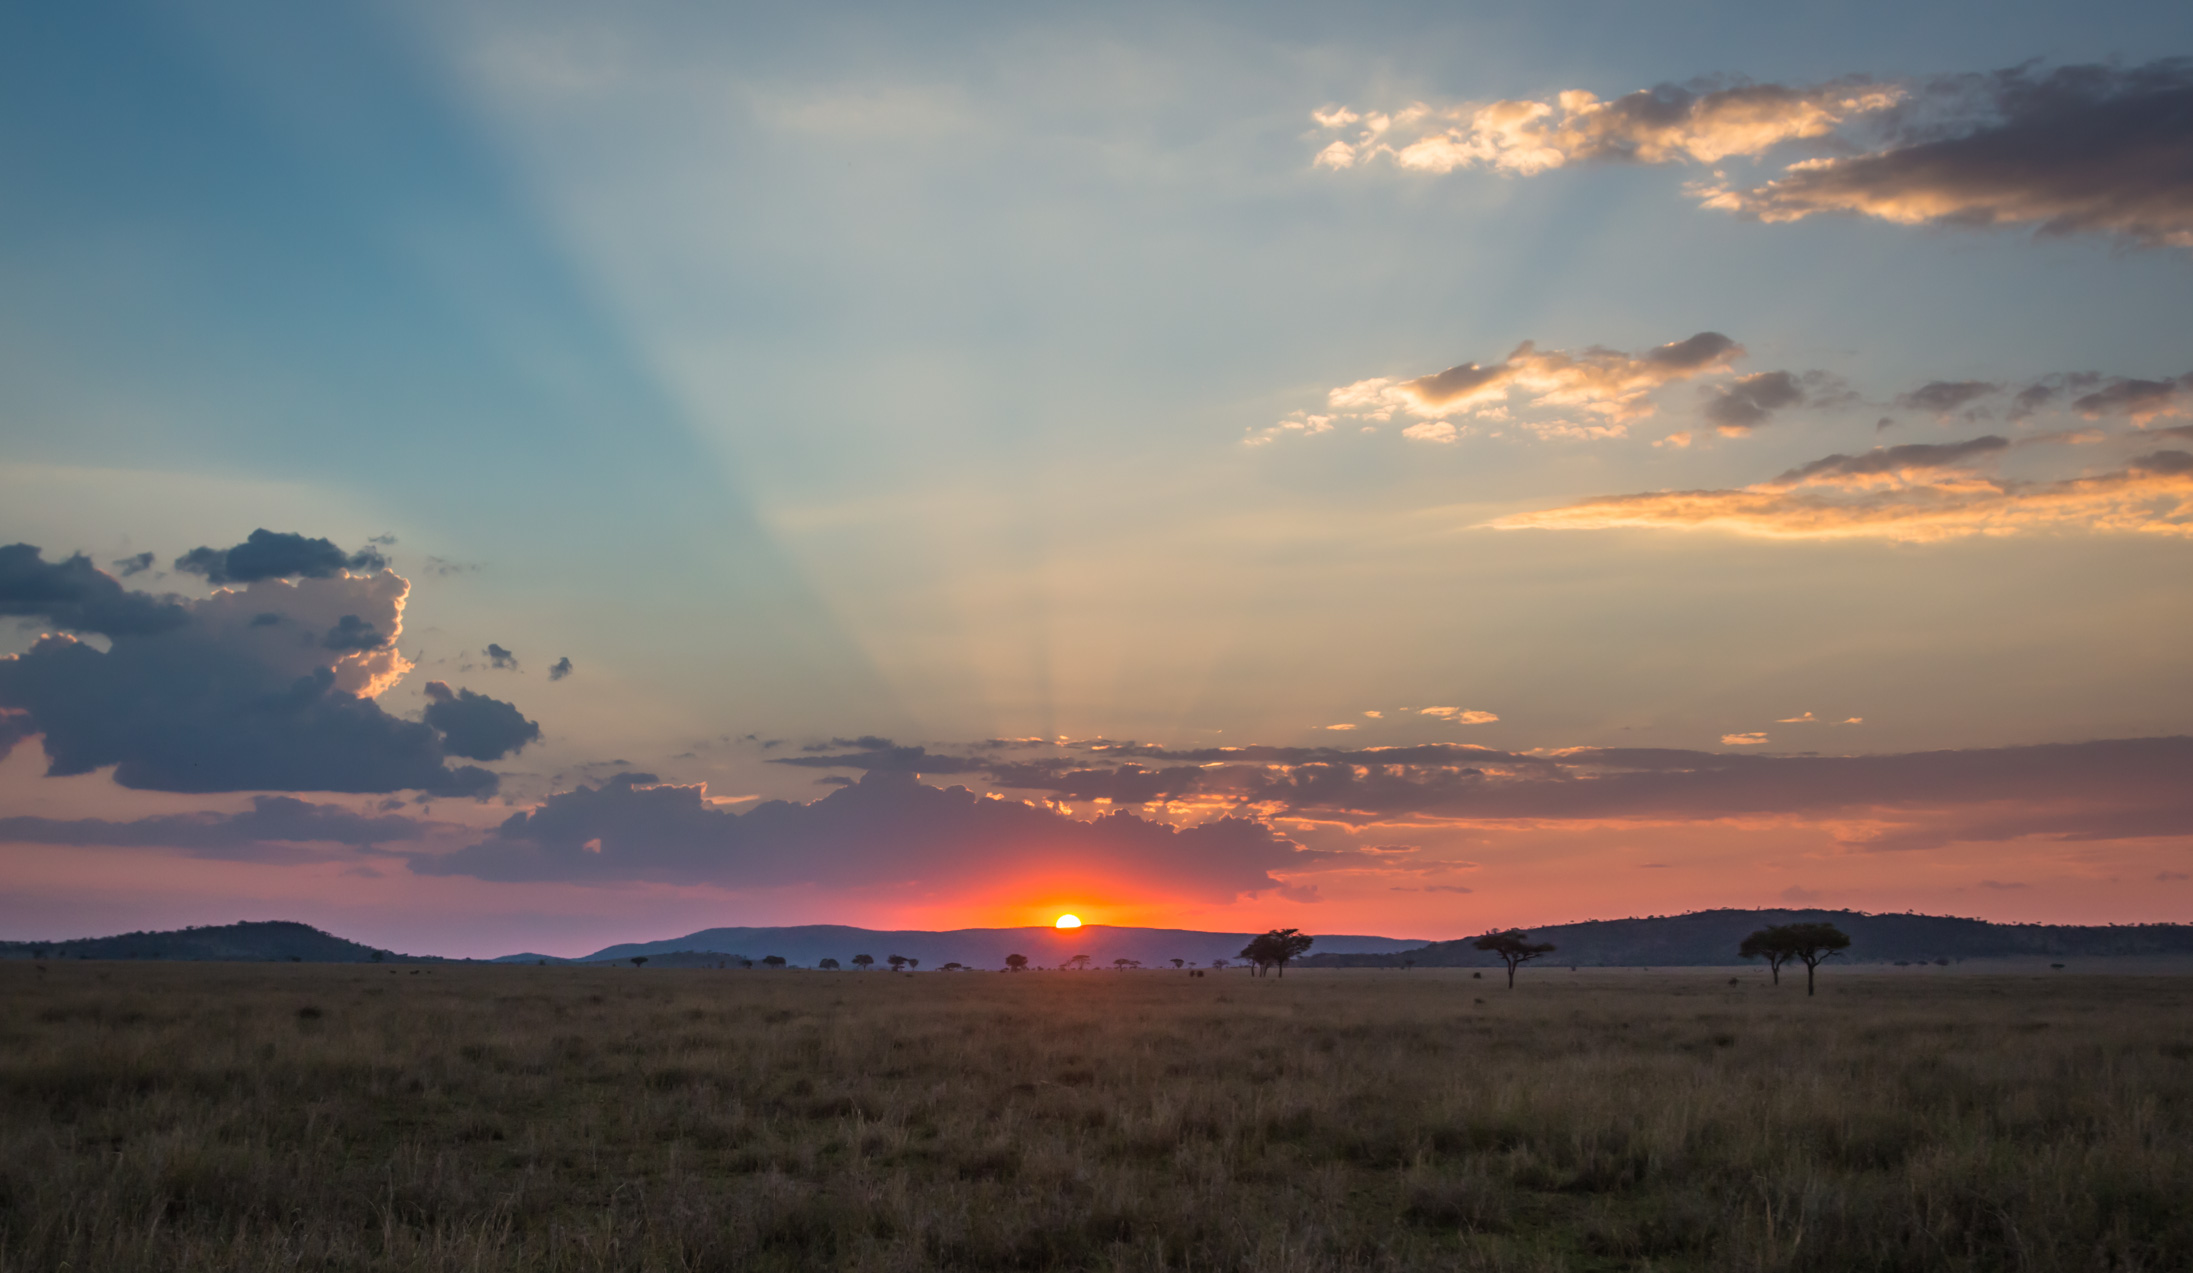 Sunsets like this are not rare in Tanzania